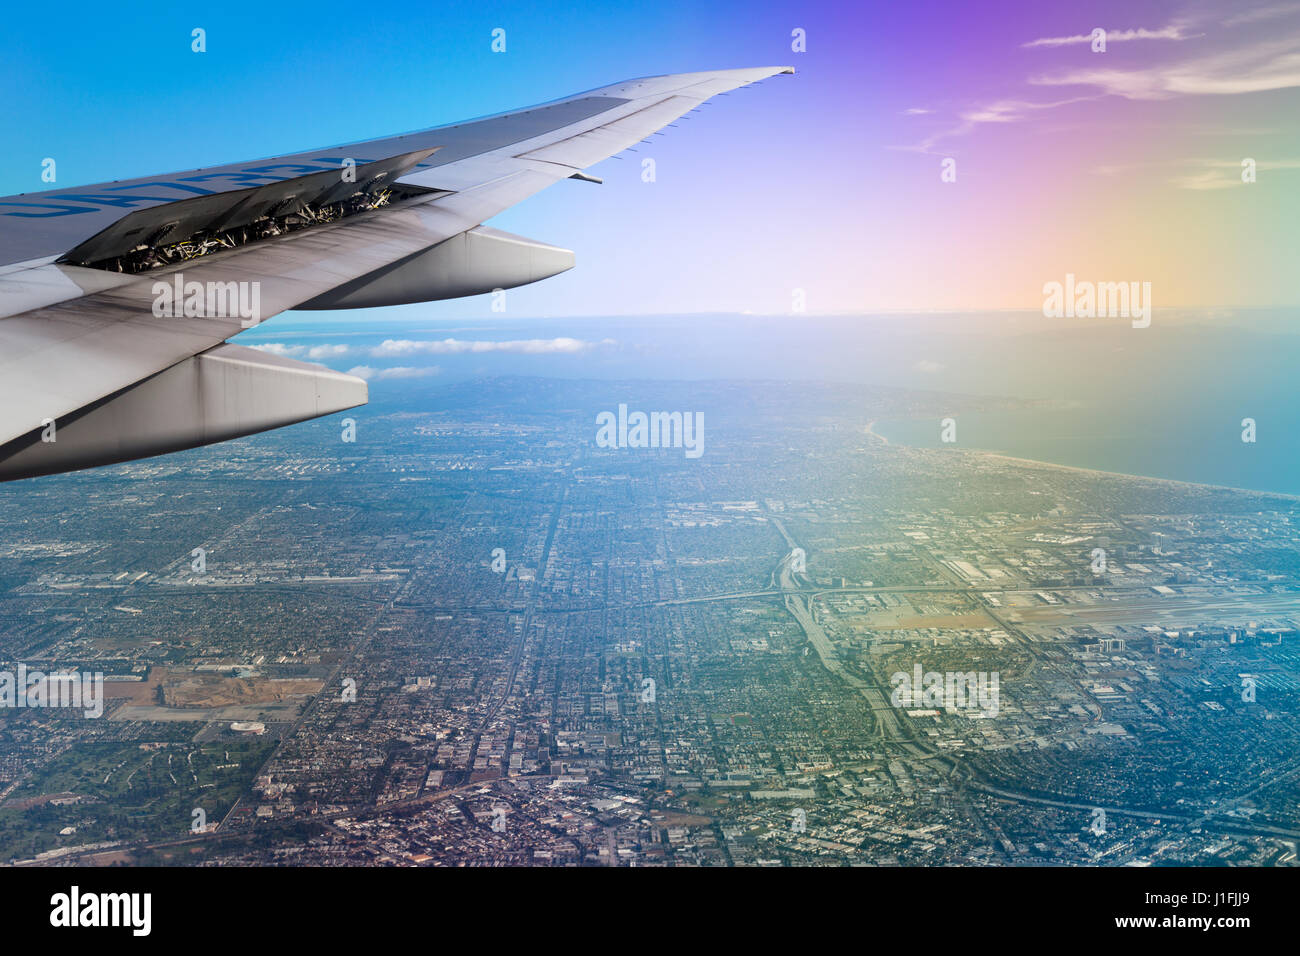 Flying into LAX, back from vacation. - Stock Image